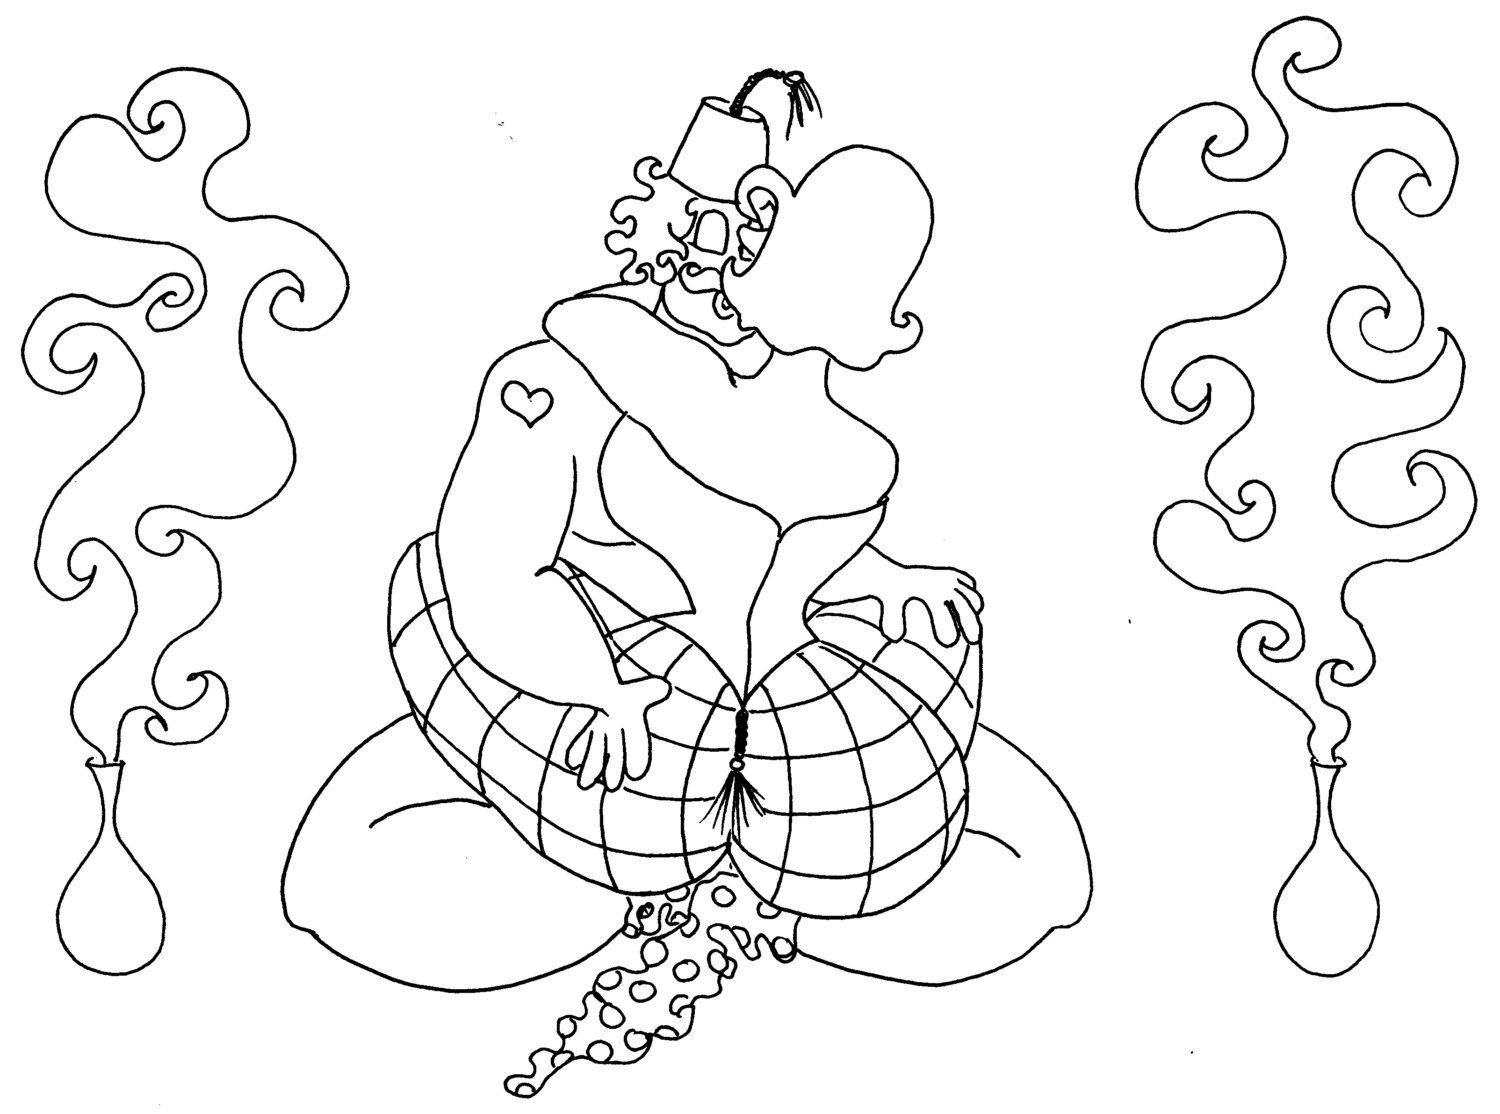 Kama Sutra Coloring Book  The Lotus Blossom Kama Sutra y Coloring Pages from